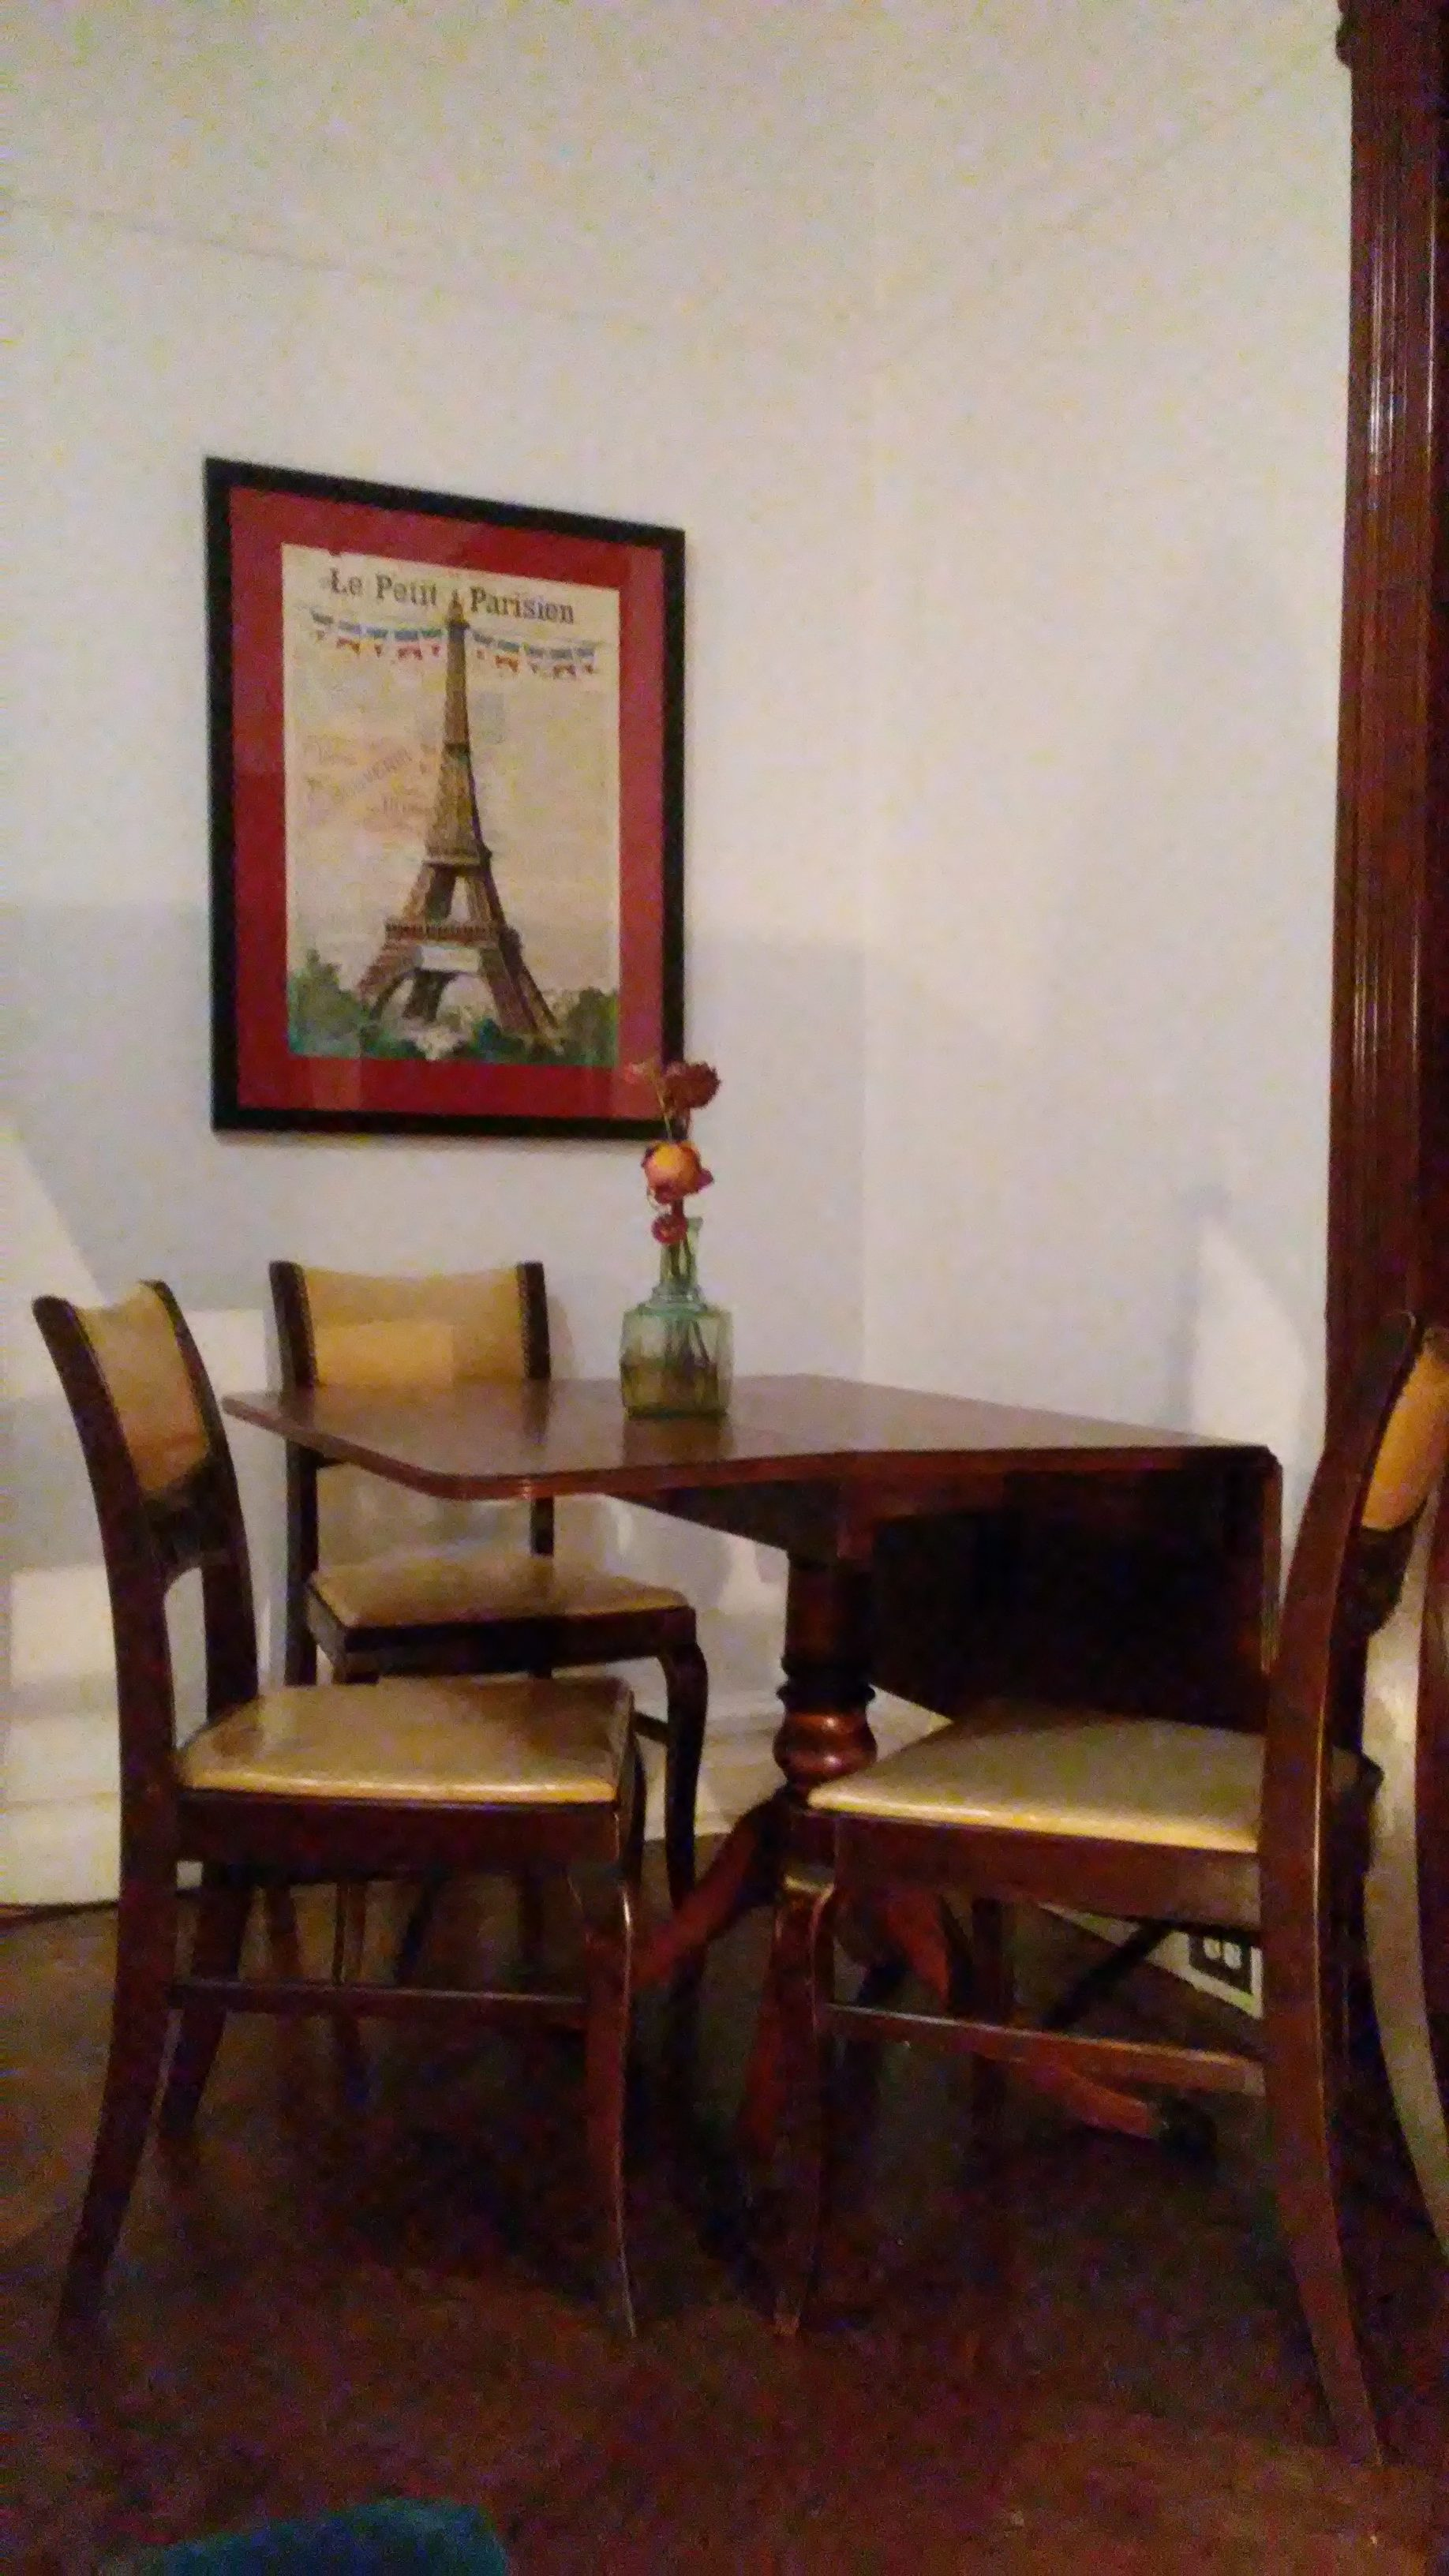 Old table and chairs set